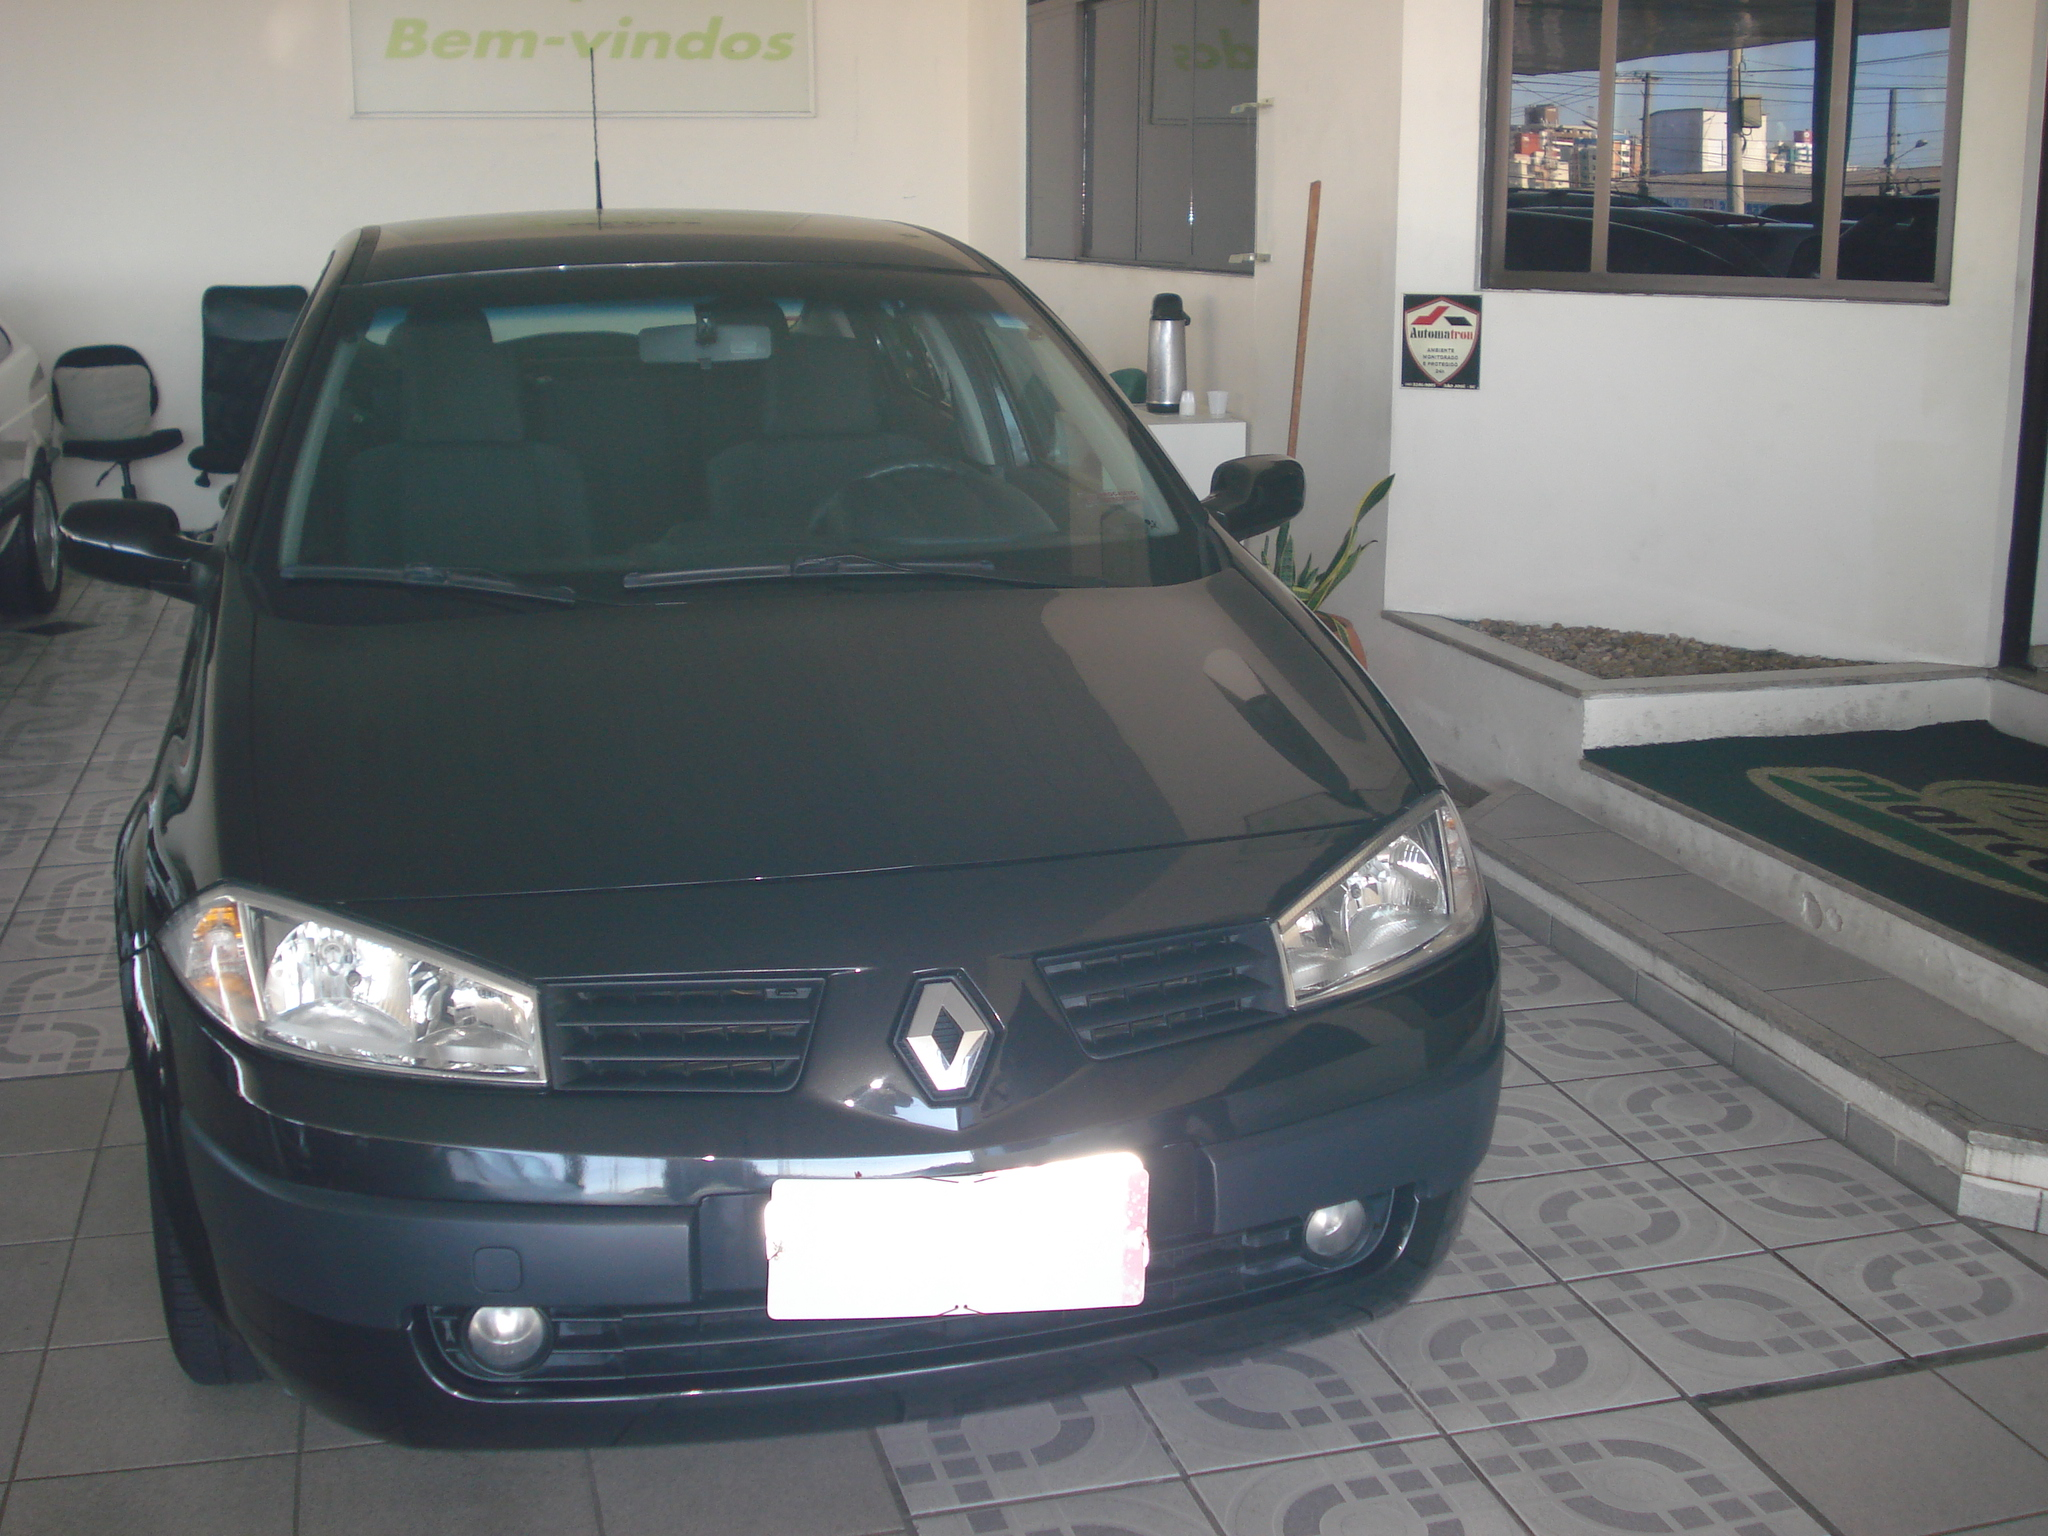 RENAULT - MEGANE SD EXP 2.0A